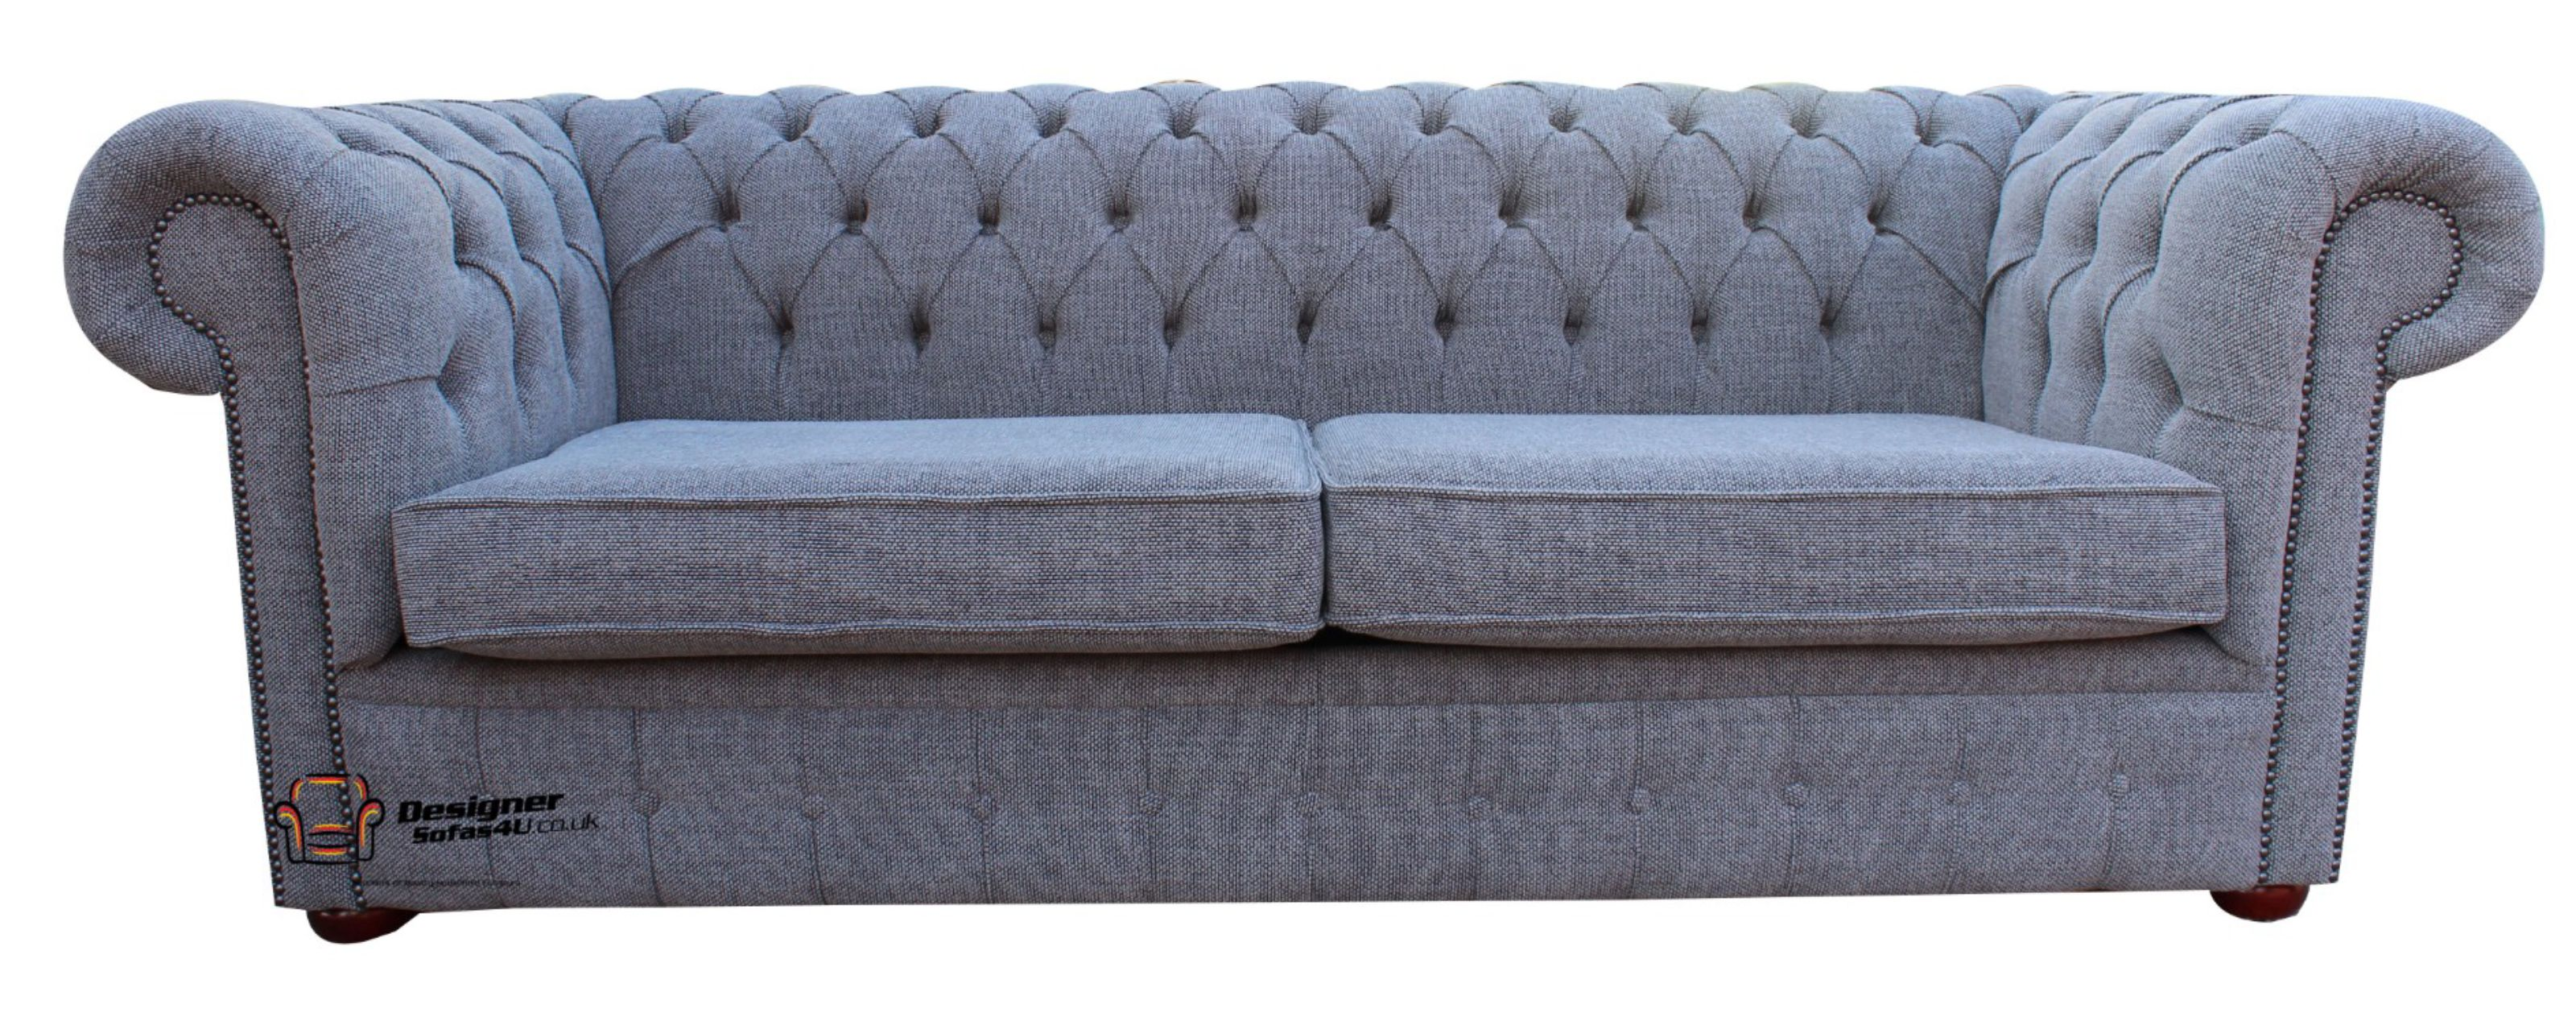 Terrific Designersofas4U Buy Slate Grey Fabric Chesterfield Sofa Ncnpc Chair Design For Home Ncnpcorg